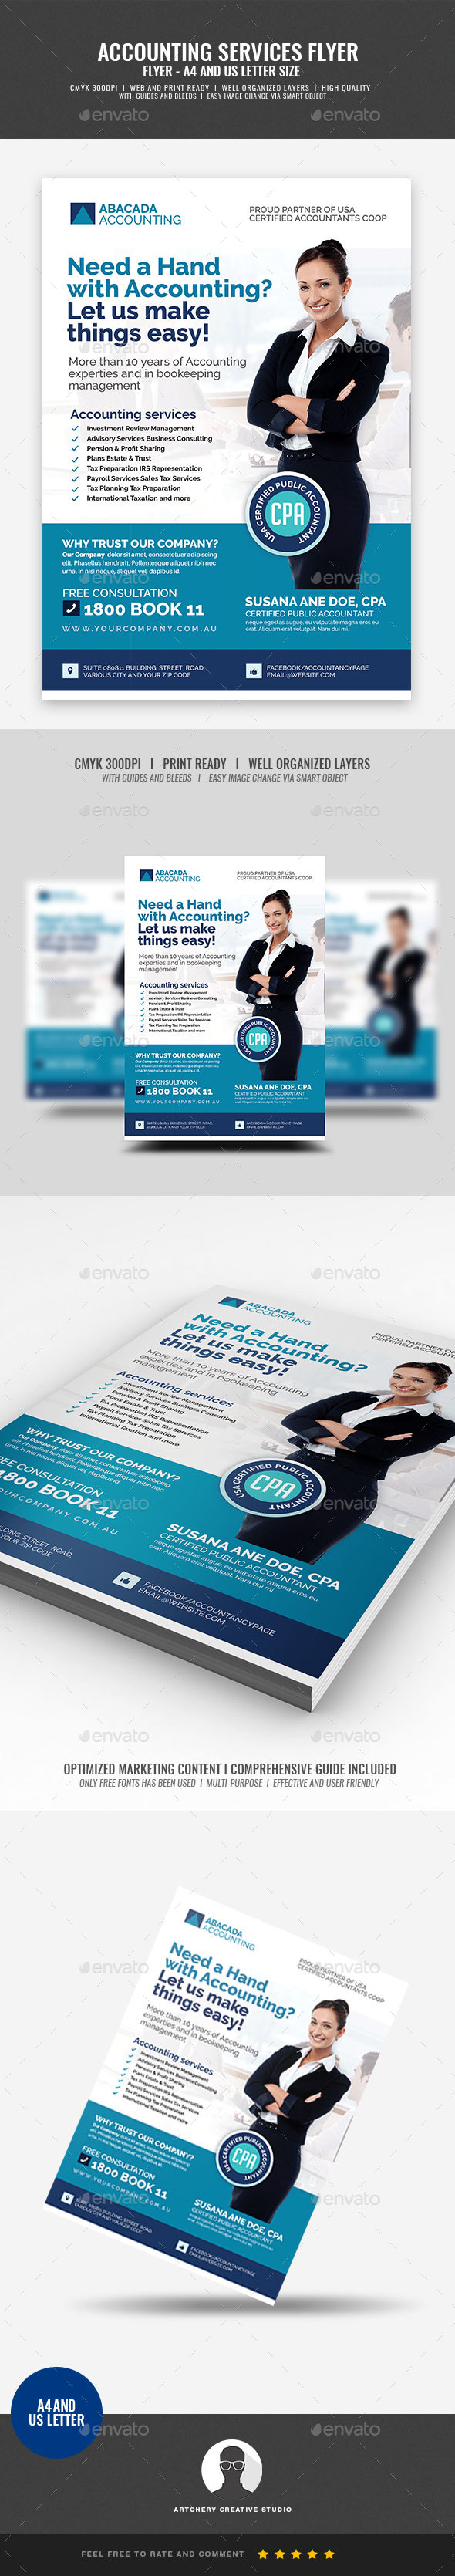 Accounting Firm Flyer - Corporate Flyers